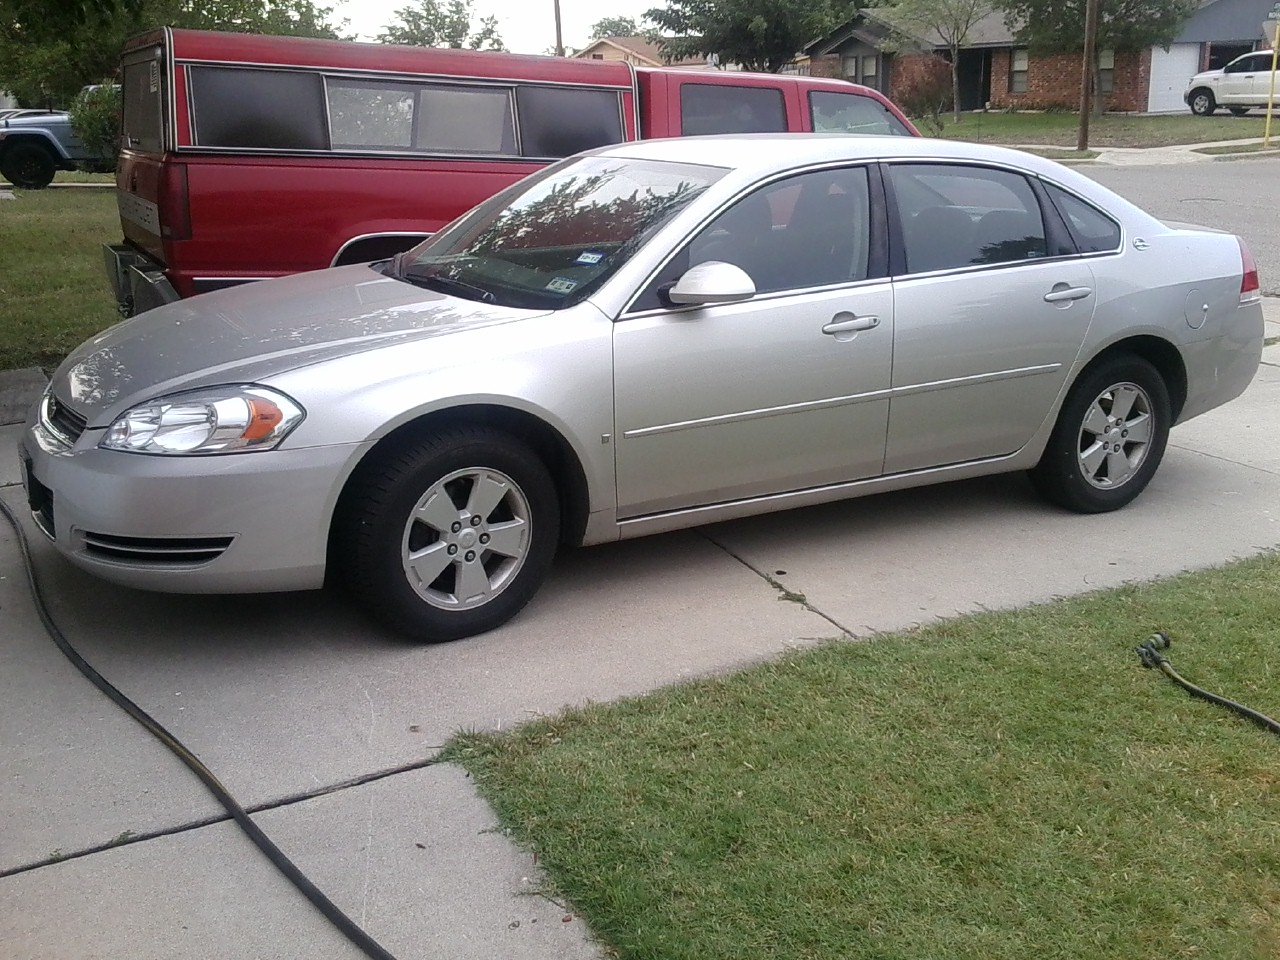 hight resolution of 2006 chevrolet impala low miles great condition priced way below book value